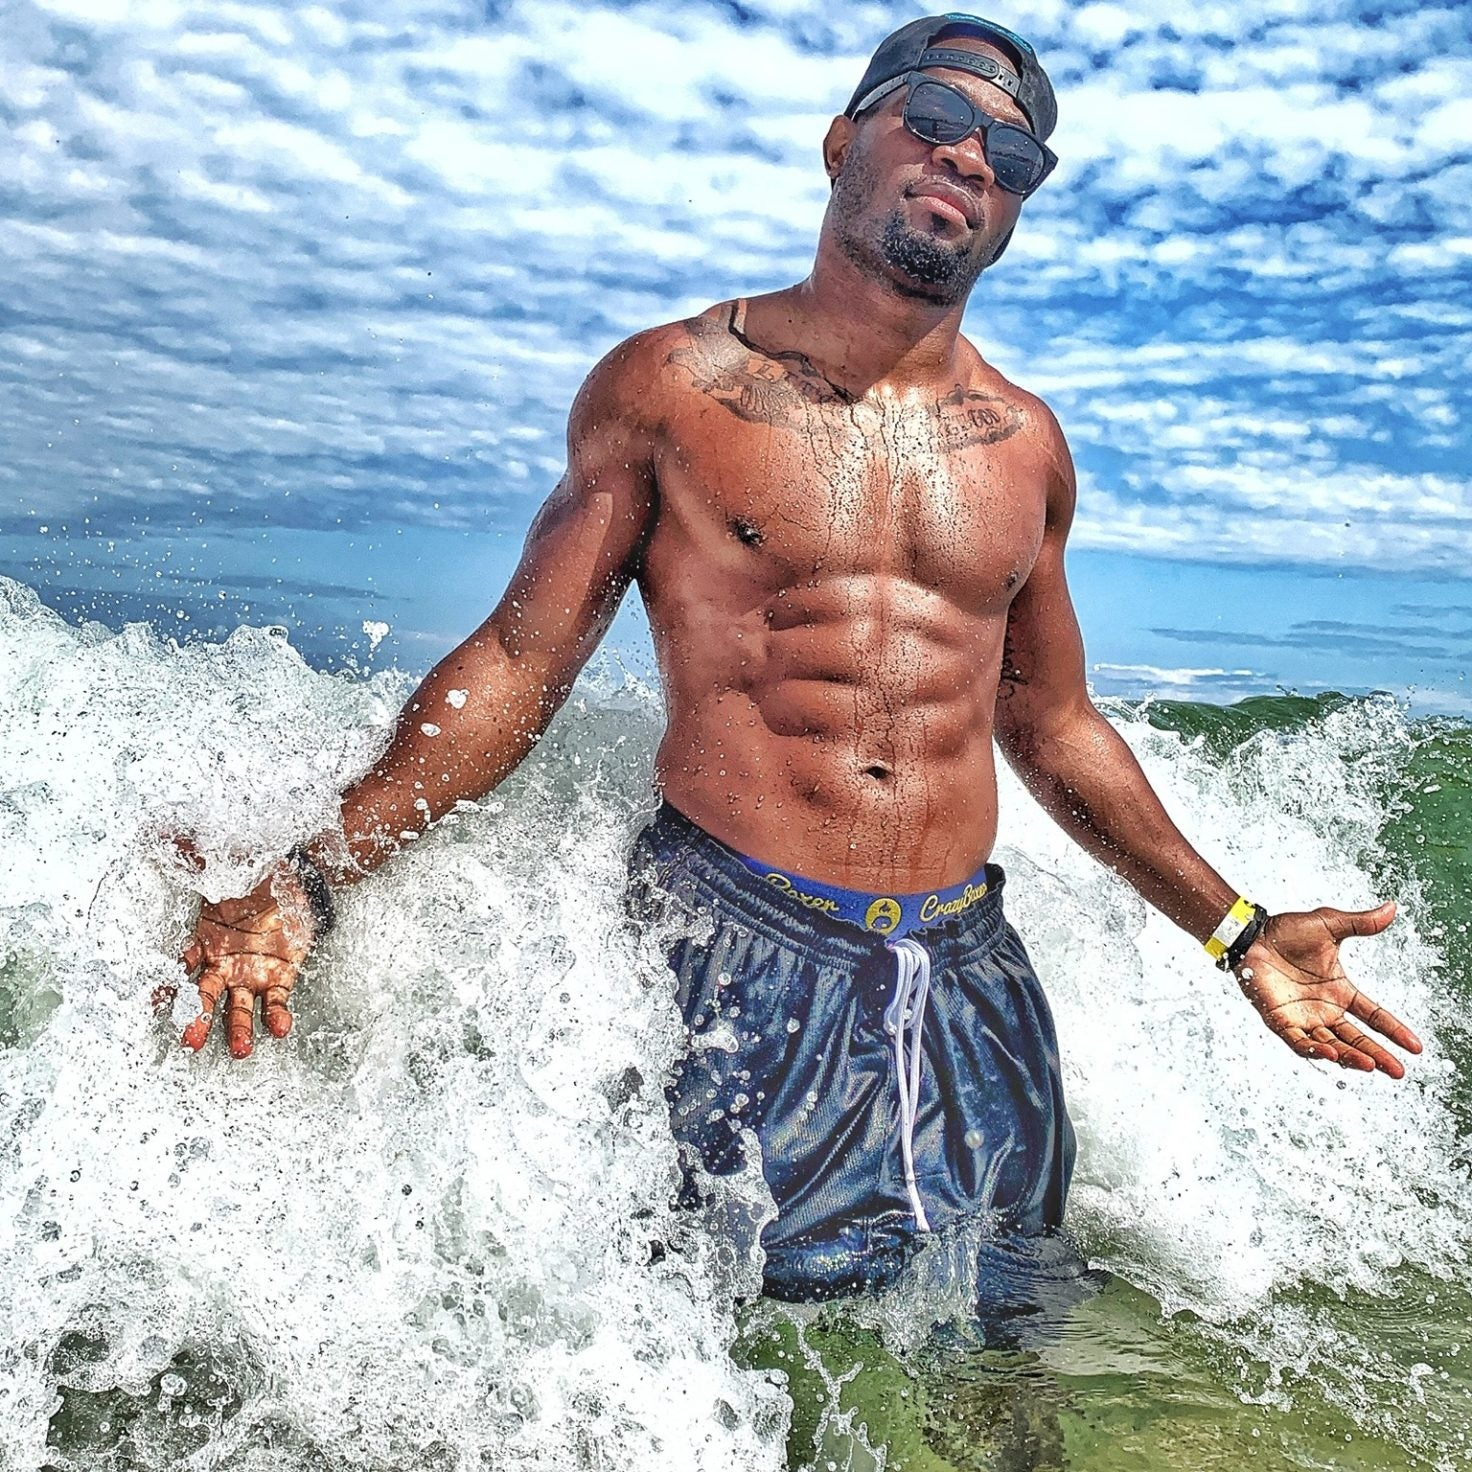 26 Photos of Traveling Black Men That Will Inspire You to Keep Globetrotting